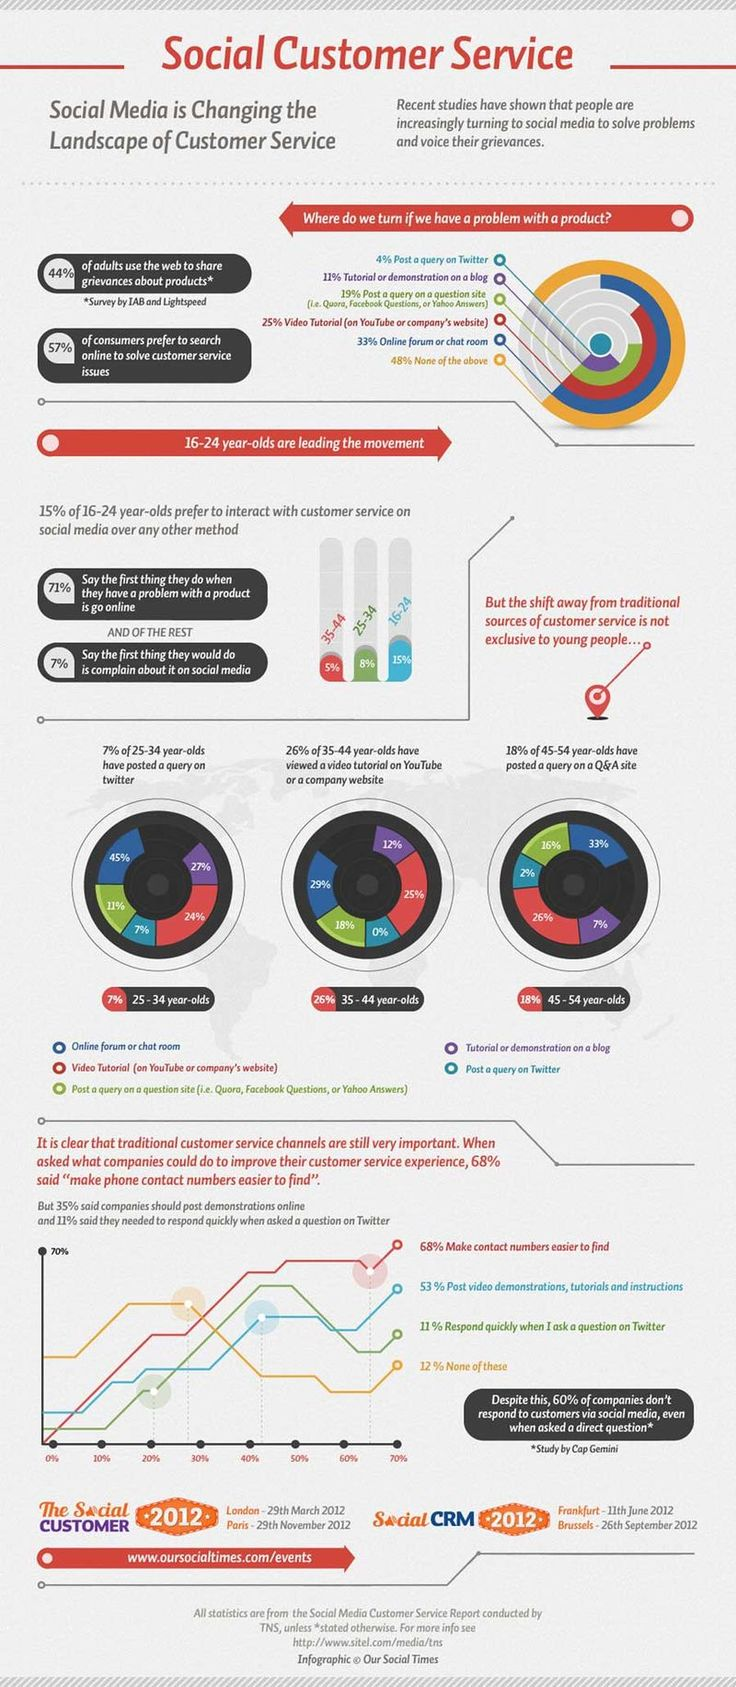 How Is Social Media Changing The Landscape Of Customer Service? #infographic